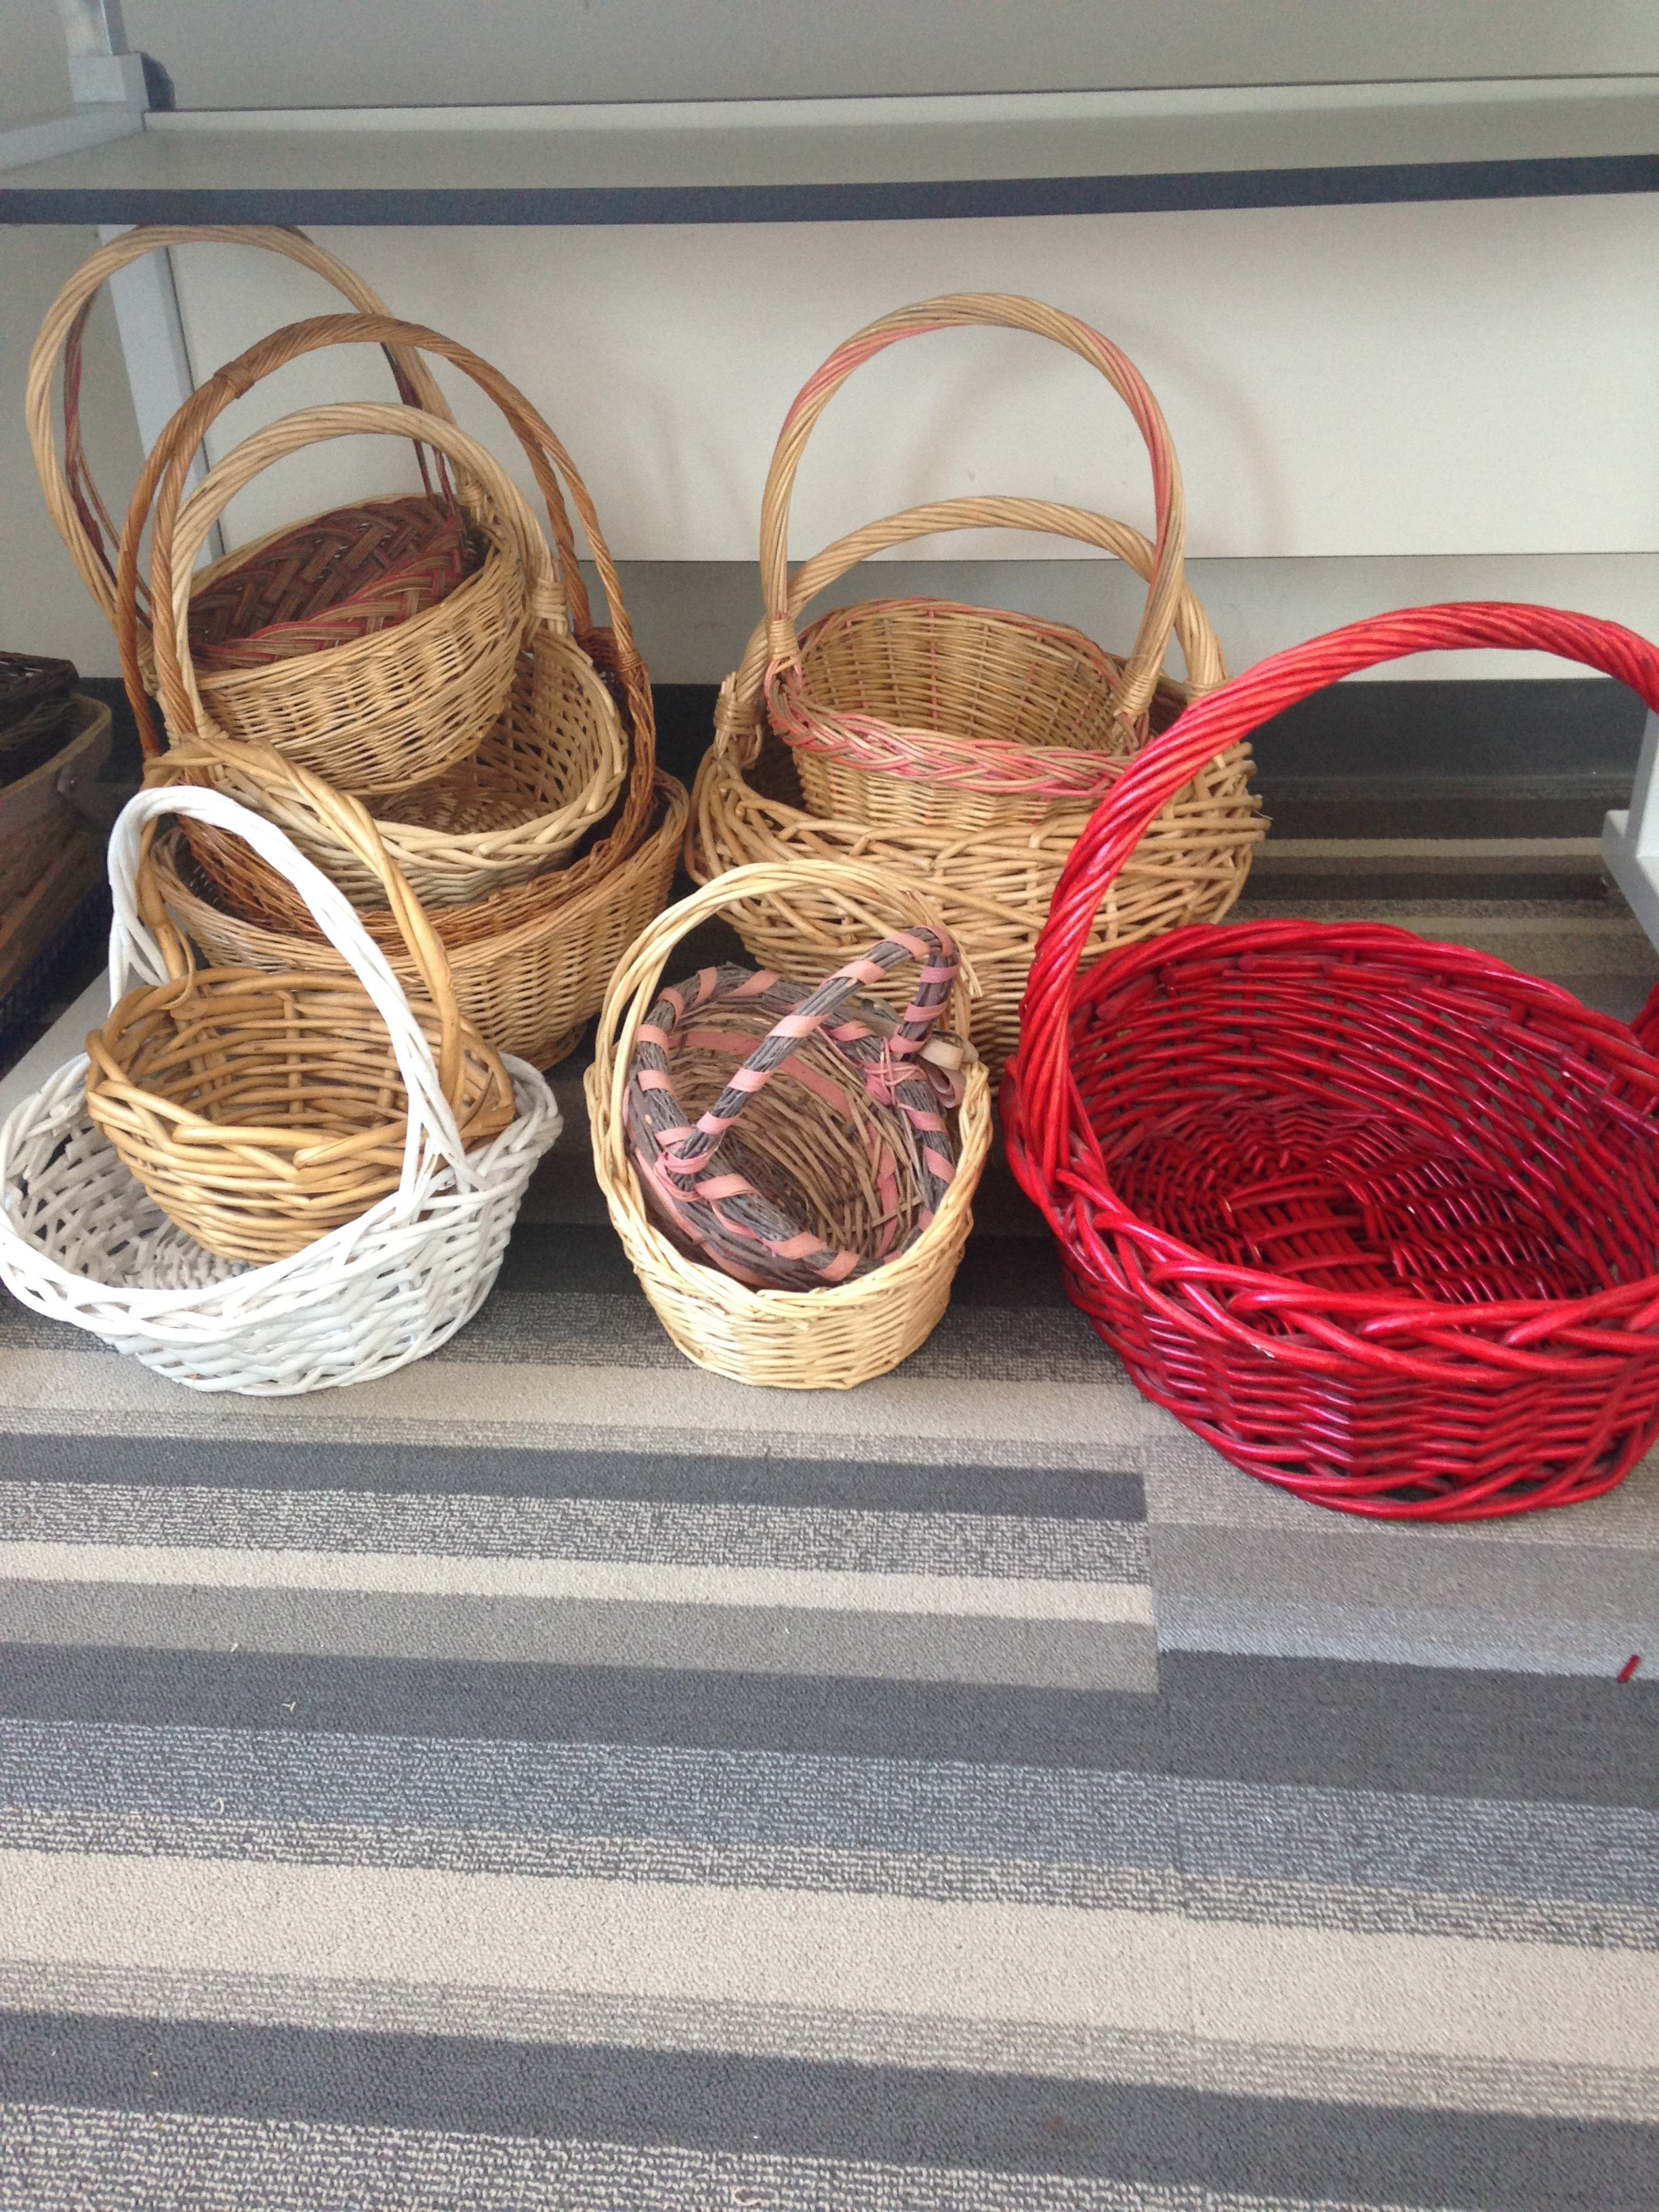 Some of the traditional shaped baskets.